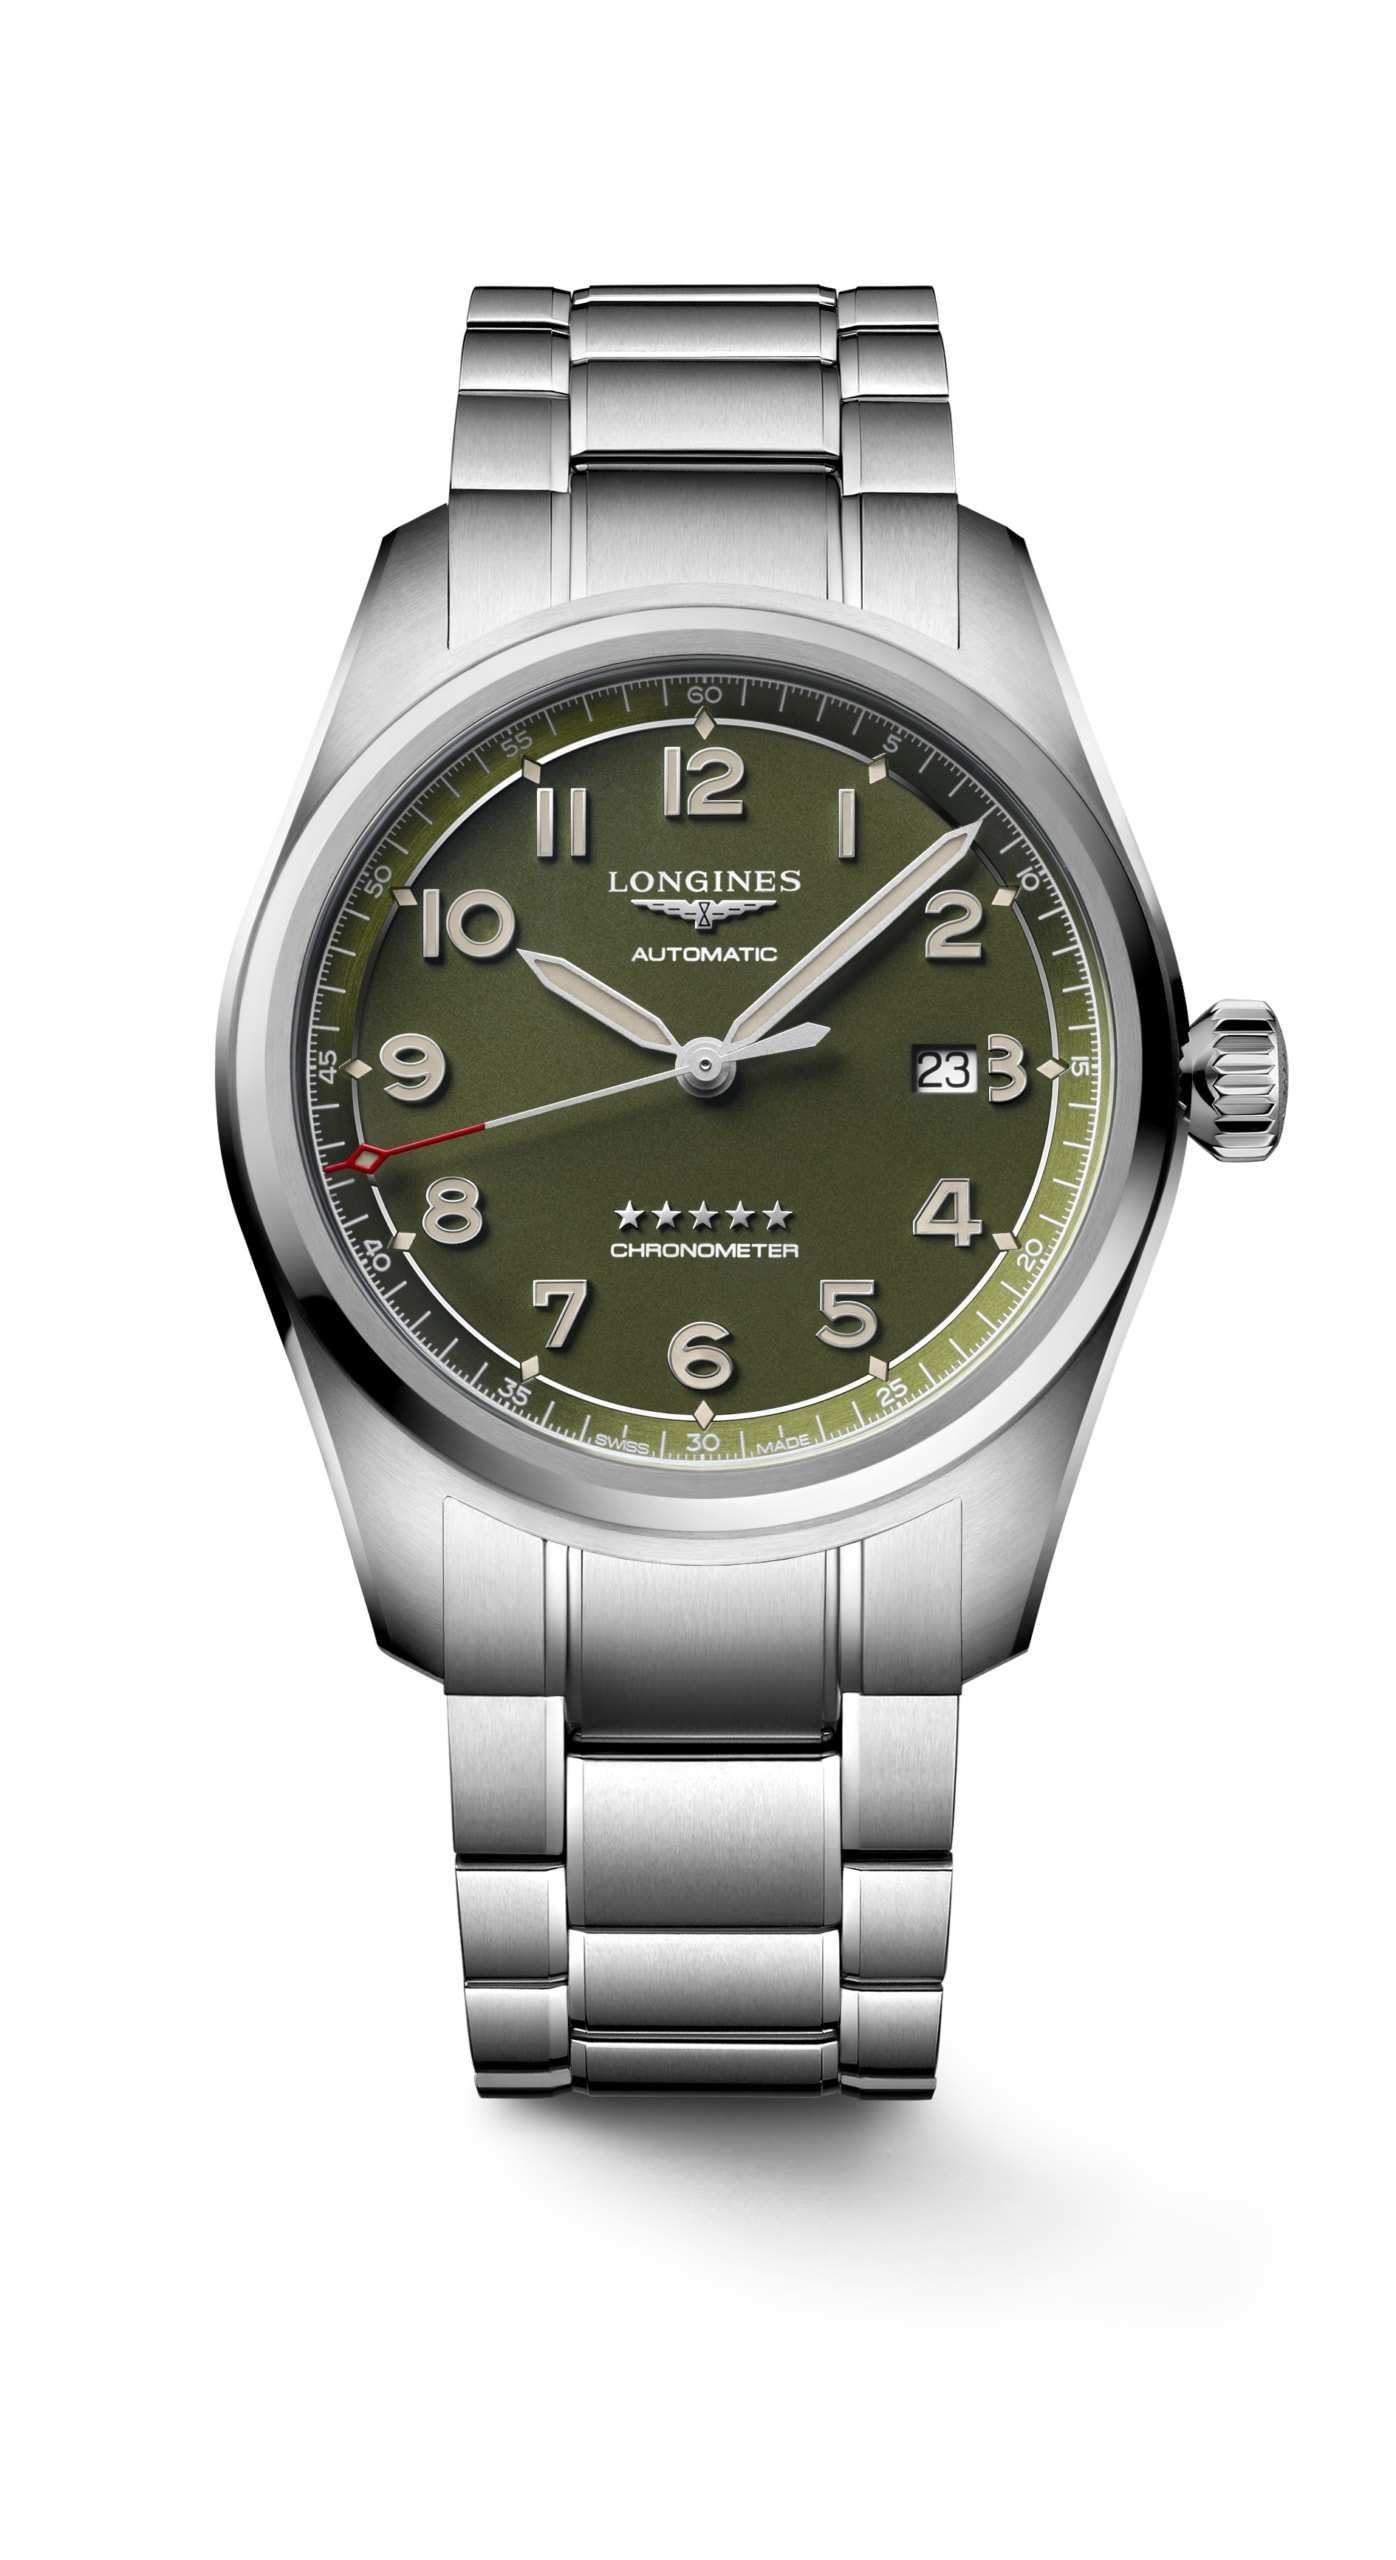 Introducing the Longines Spirit with Green Dial